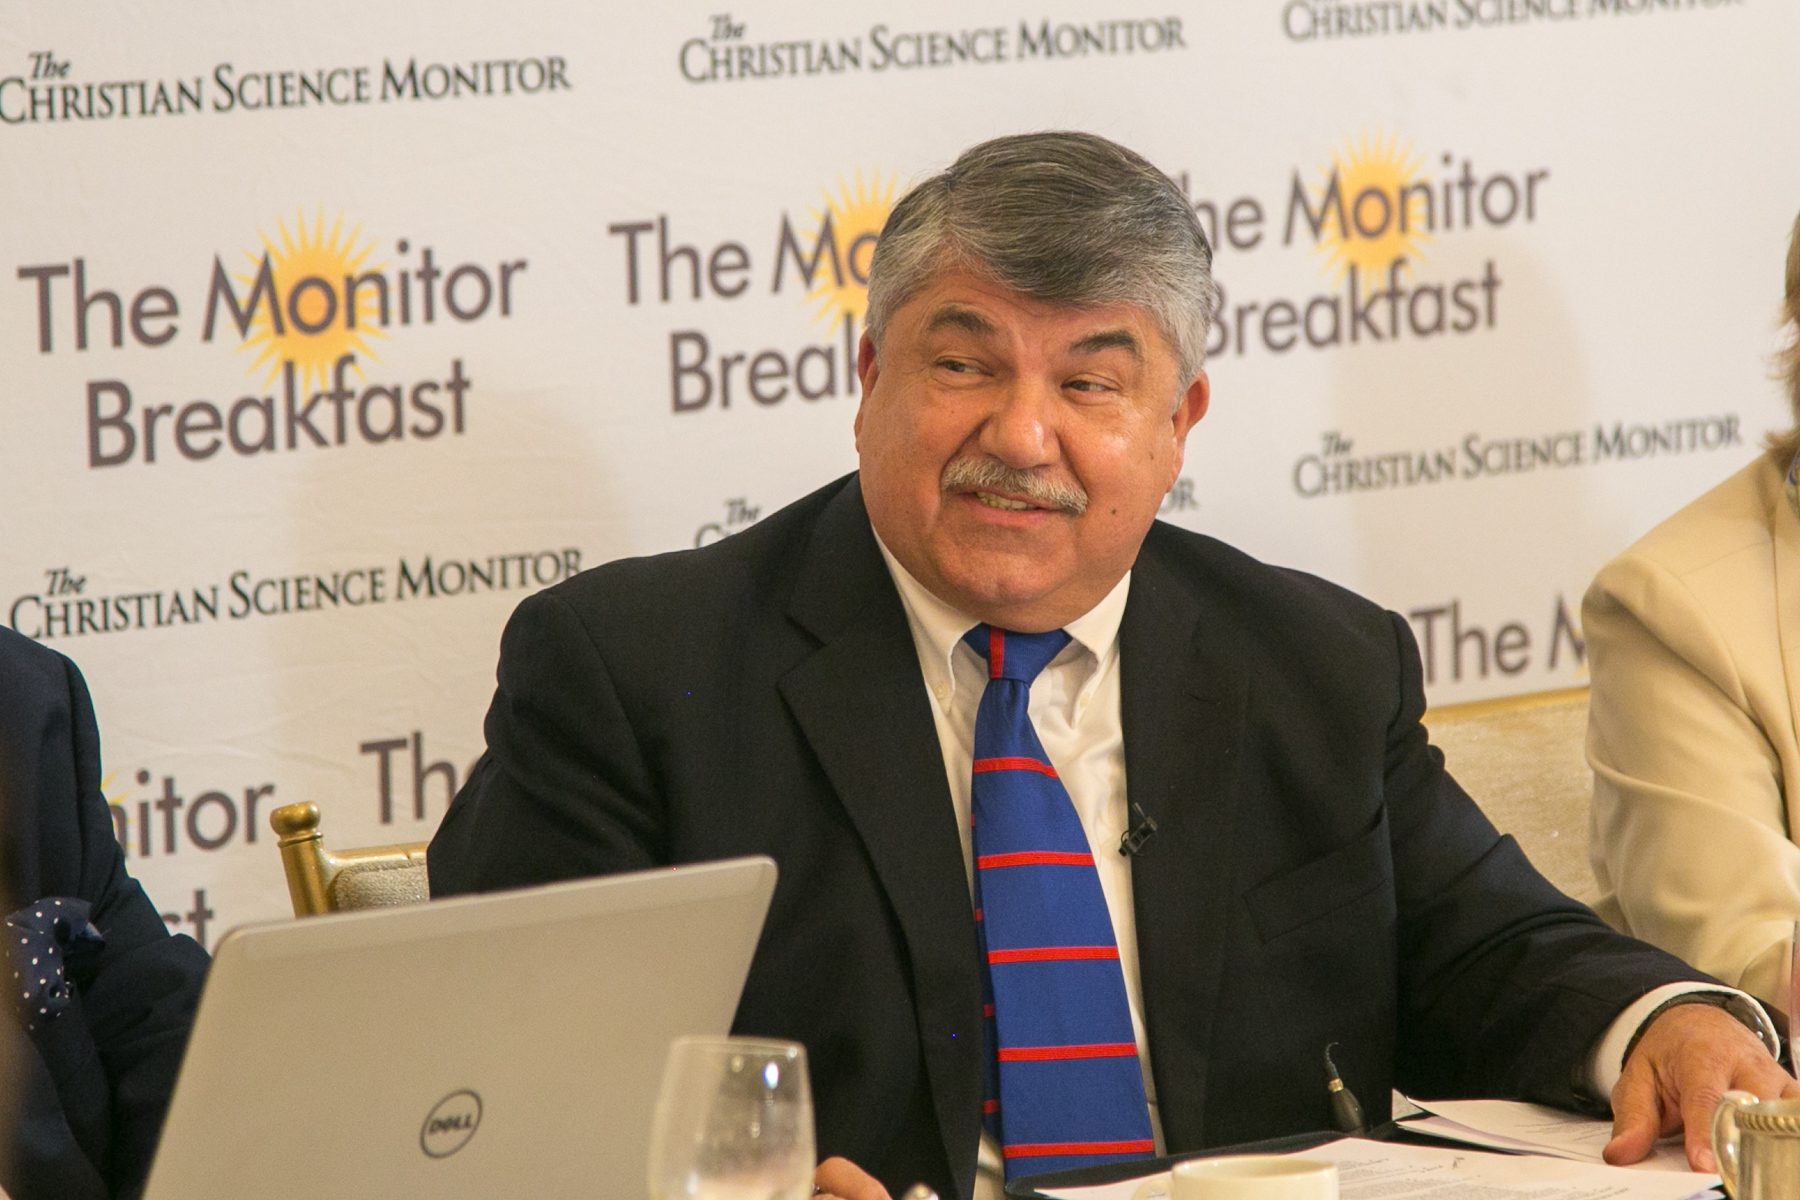 Trumka at 2019 Christian Science Monitor Breakfast